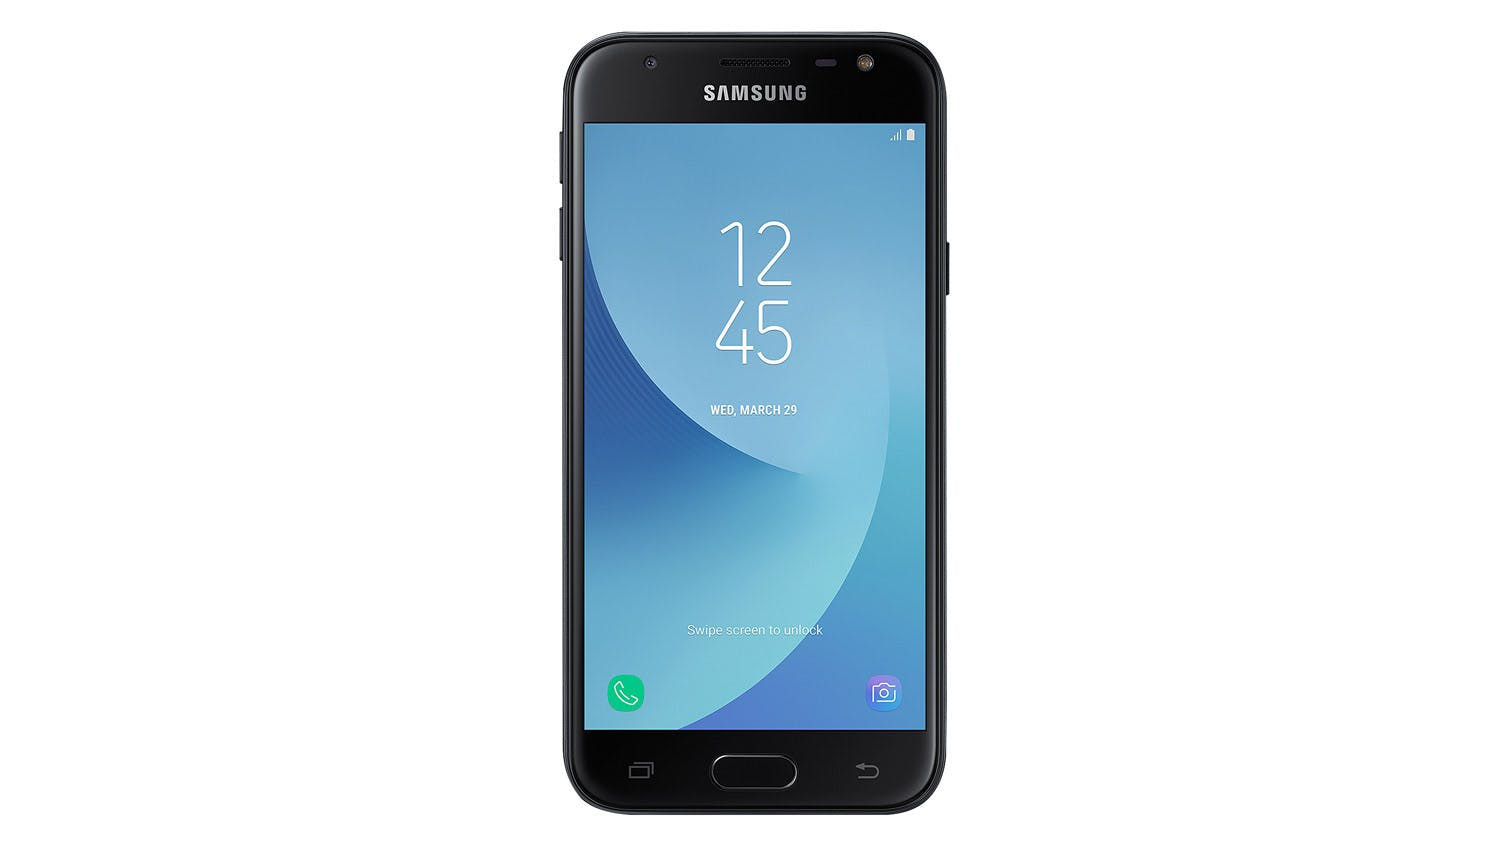 2degrees Samsung Galaxy J3 Pro Smartphone | Harvey Norman New Zealand